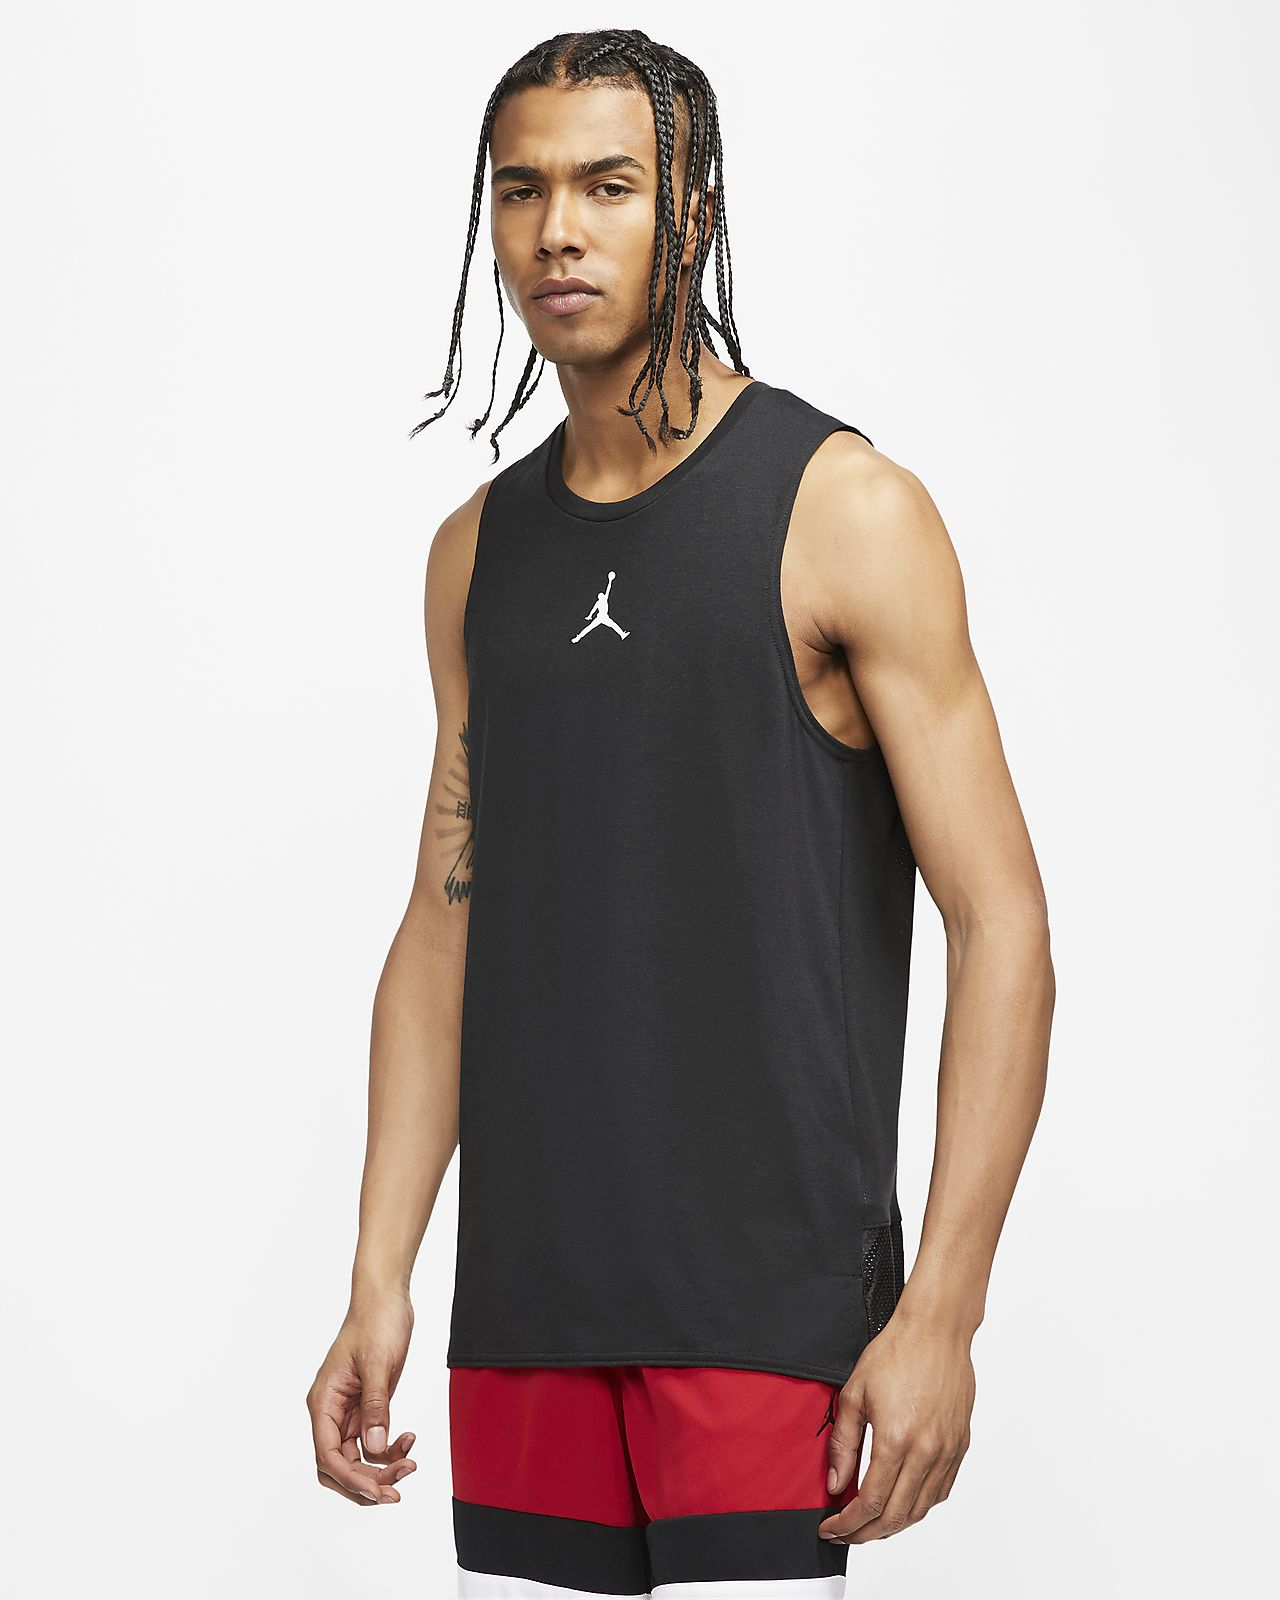 Jordan 23 Alpha Men's Top